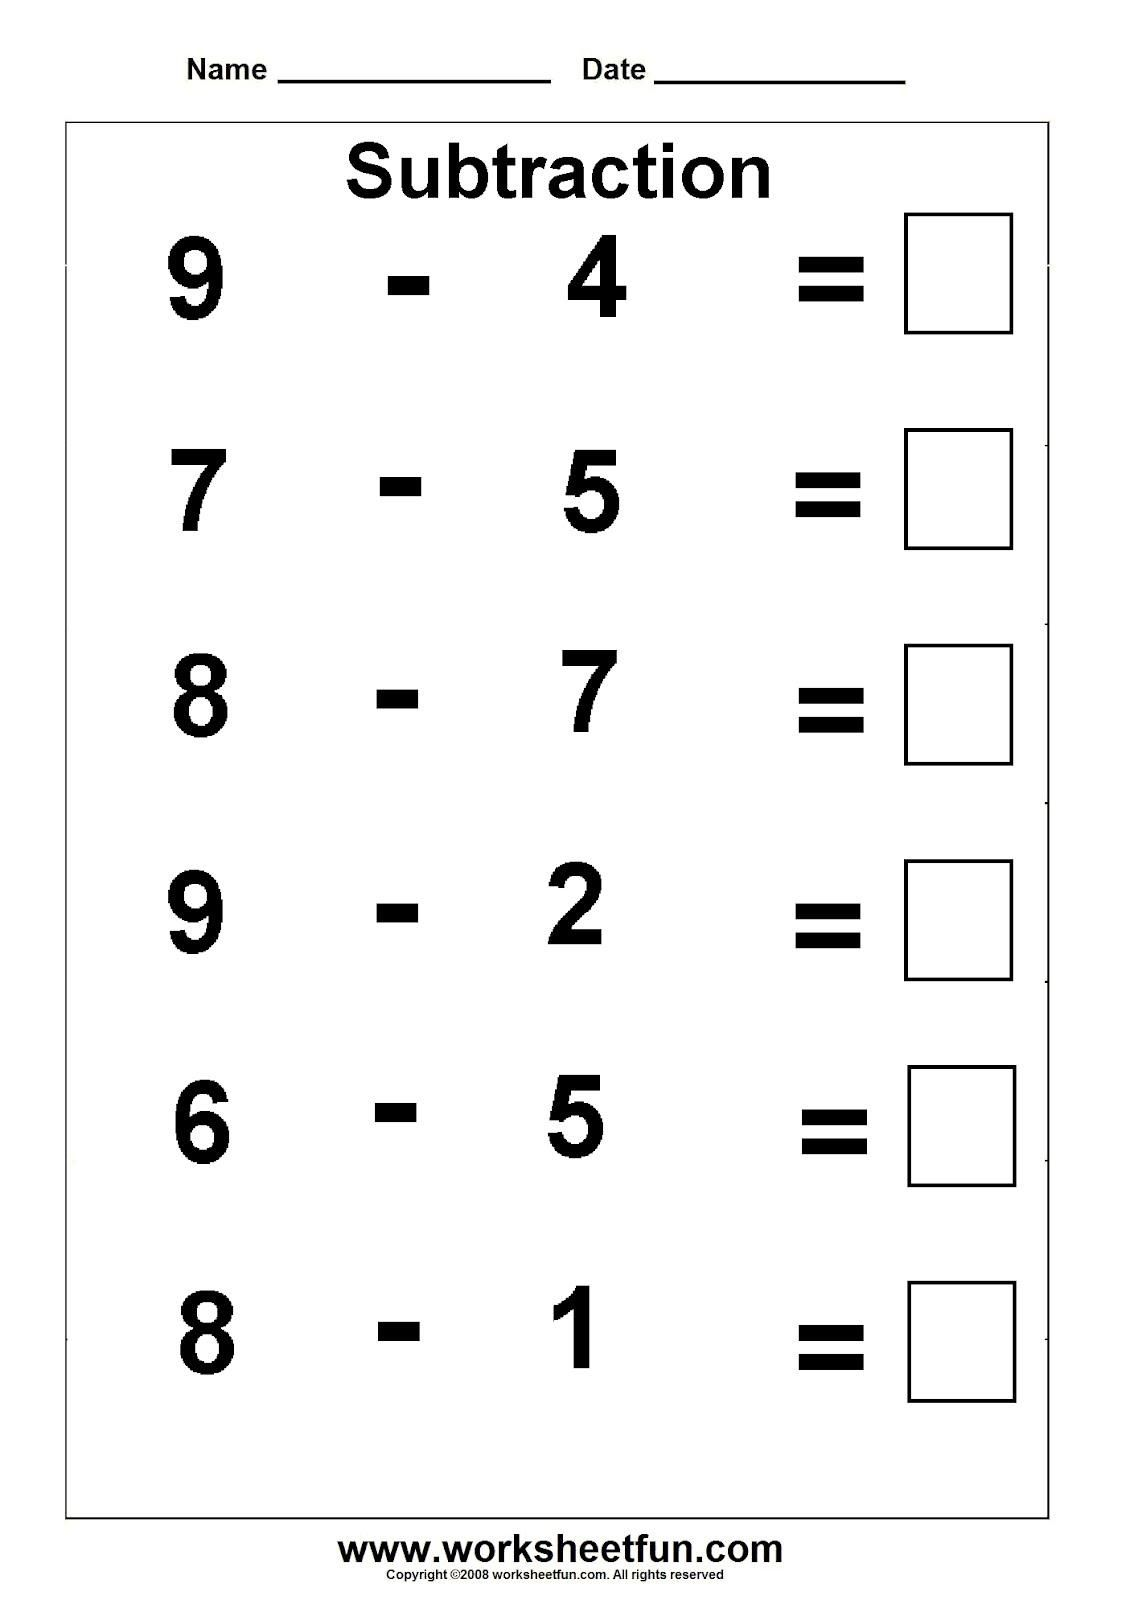 18 Free Printable Math Worksheets For Kindergarten And First Grade In 2020 Kindergarten Math Worksheets Free Math Addition Worksheets Free Printable Math Worksheets